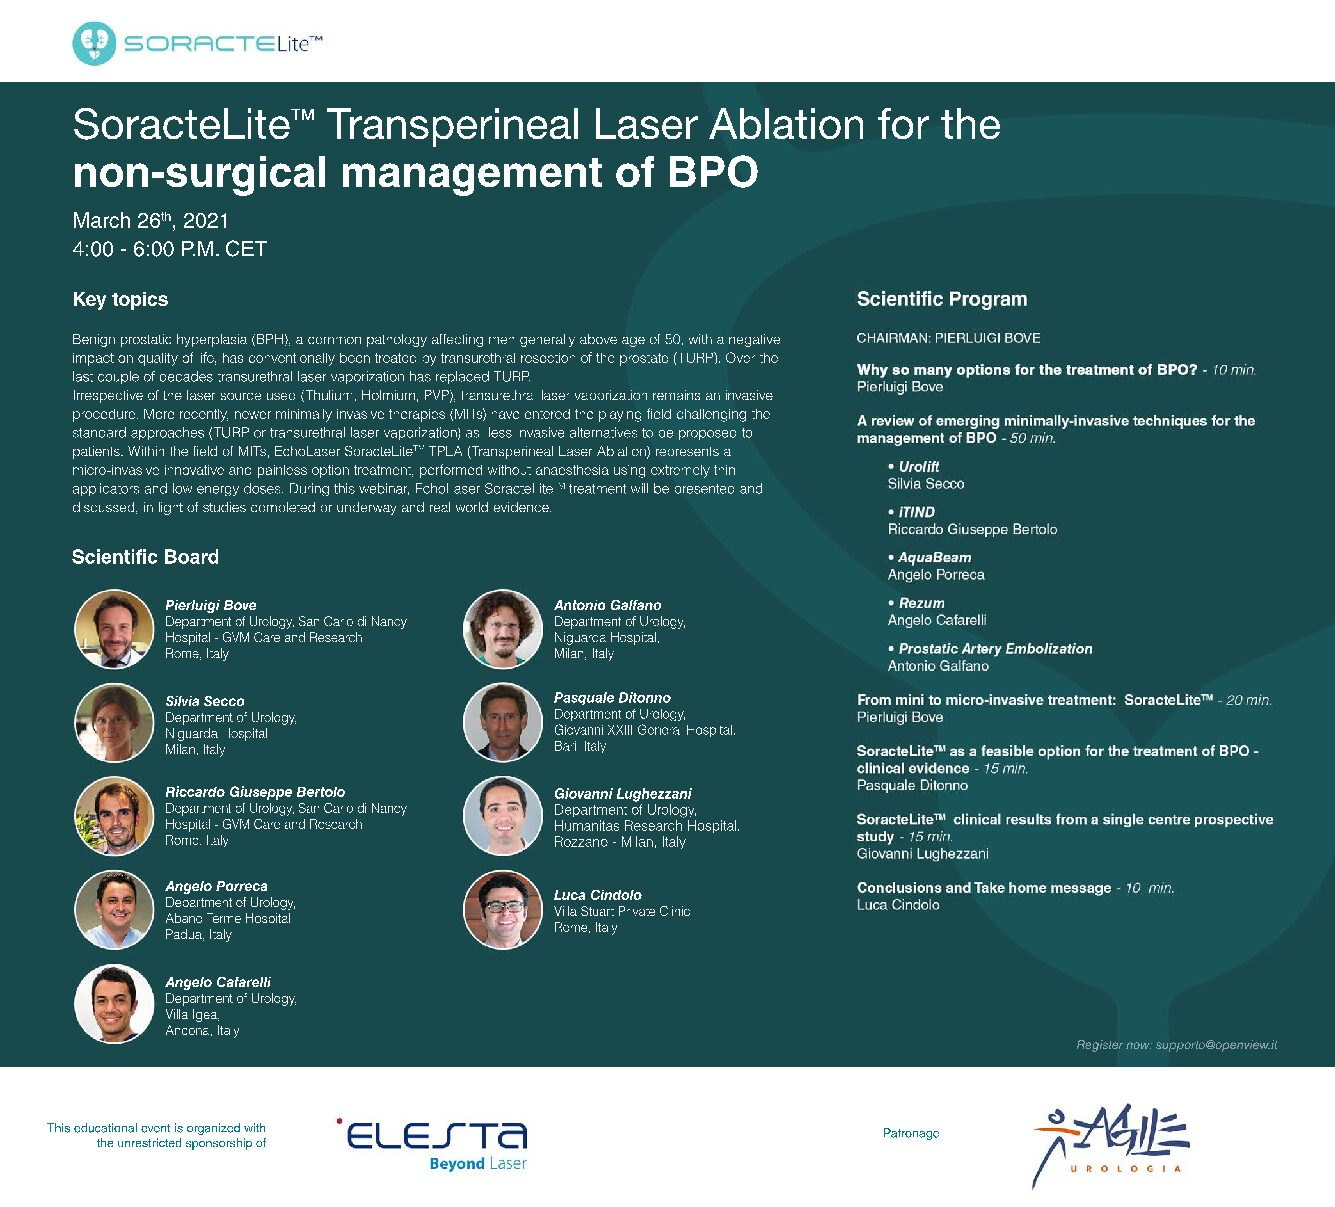 SoracteLite Transperineal Laser Ablation for the management of BPO